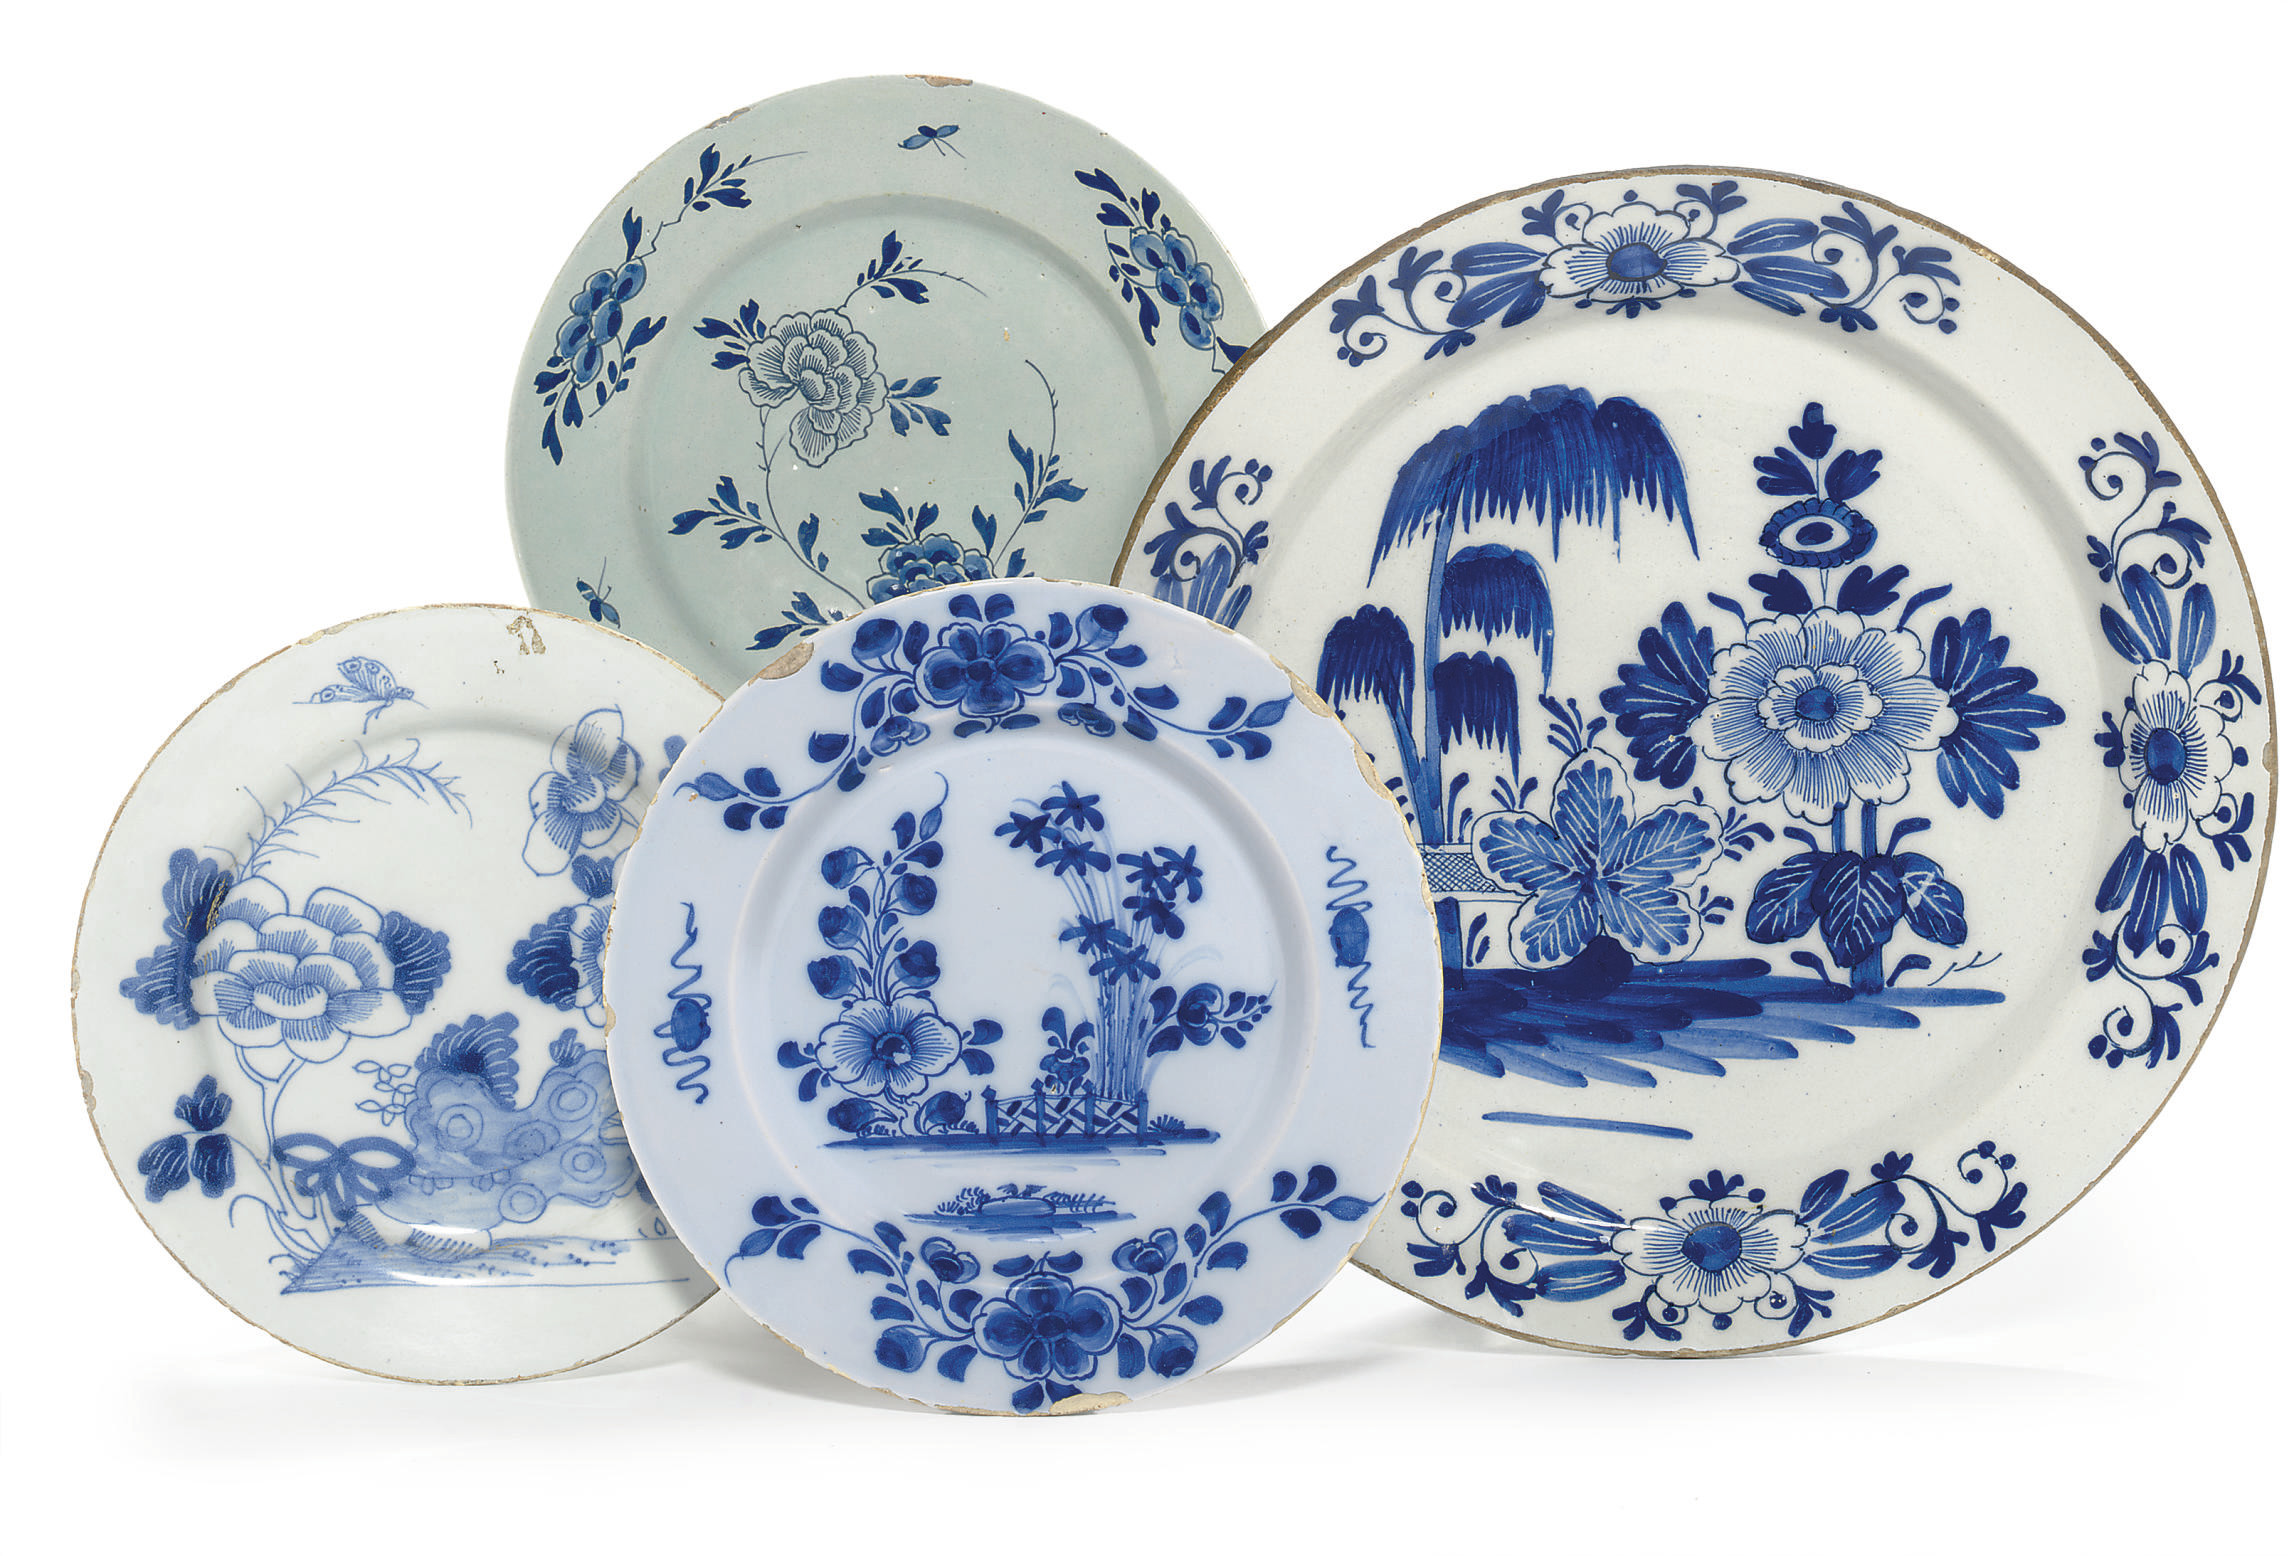 A DUTCH DELFT CHARGER AND THRE